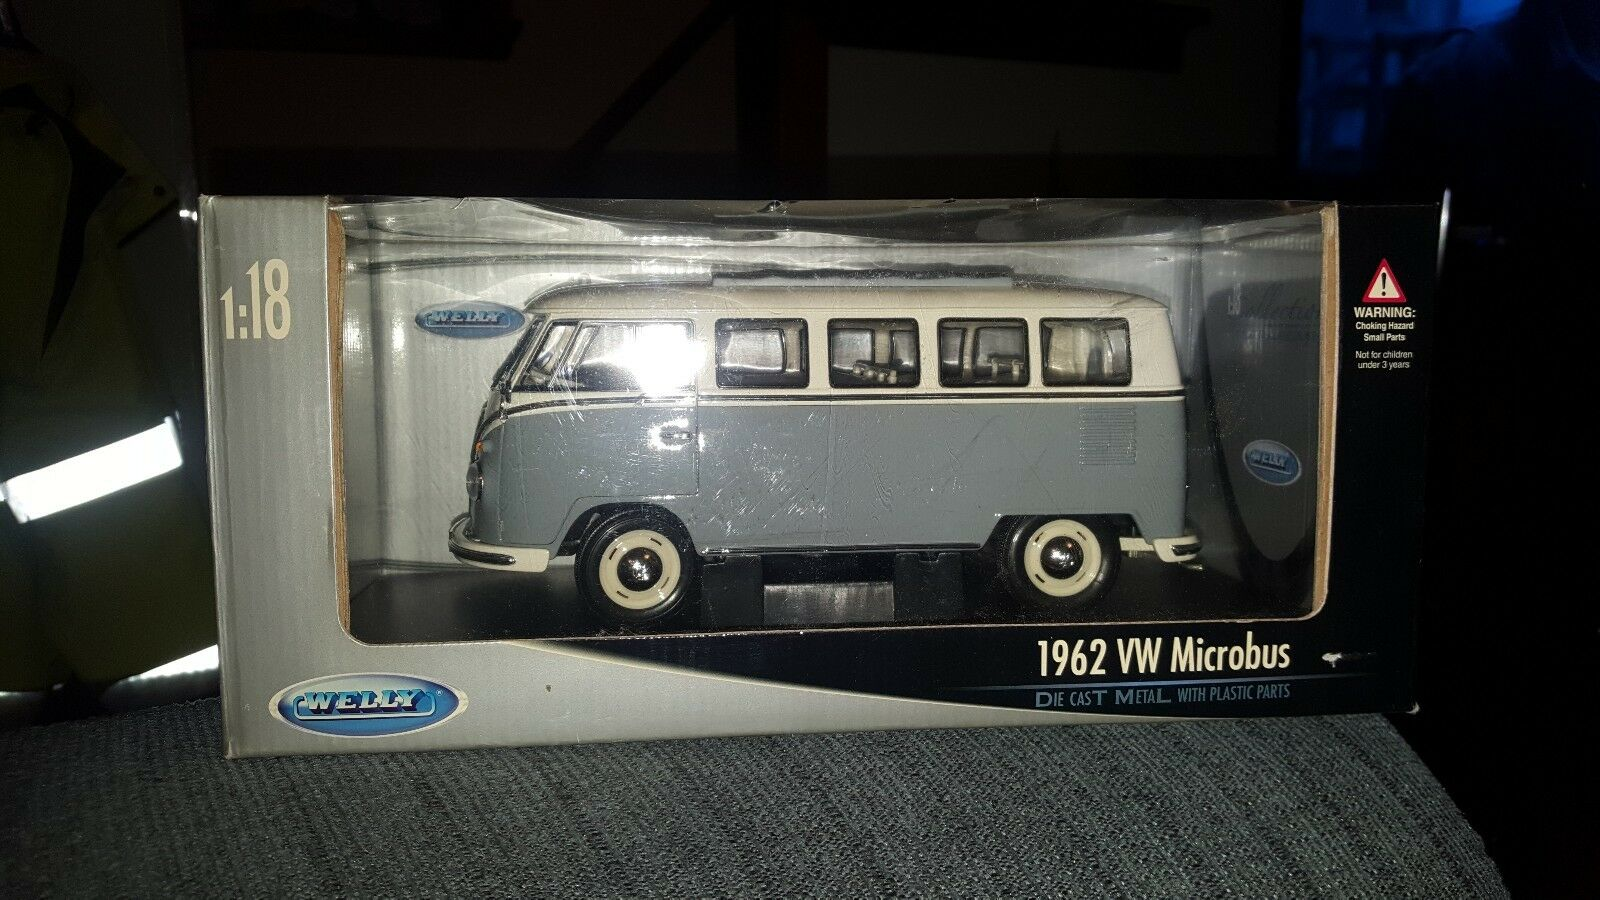 1 18 SCALE DIECAST 1962 VW MICROBUS IN blanco\azul BY WELLY.